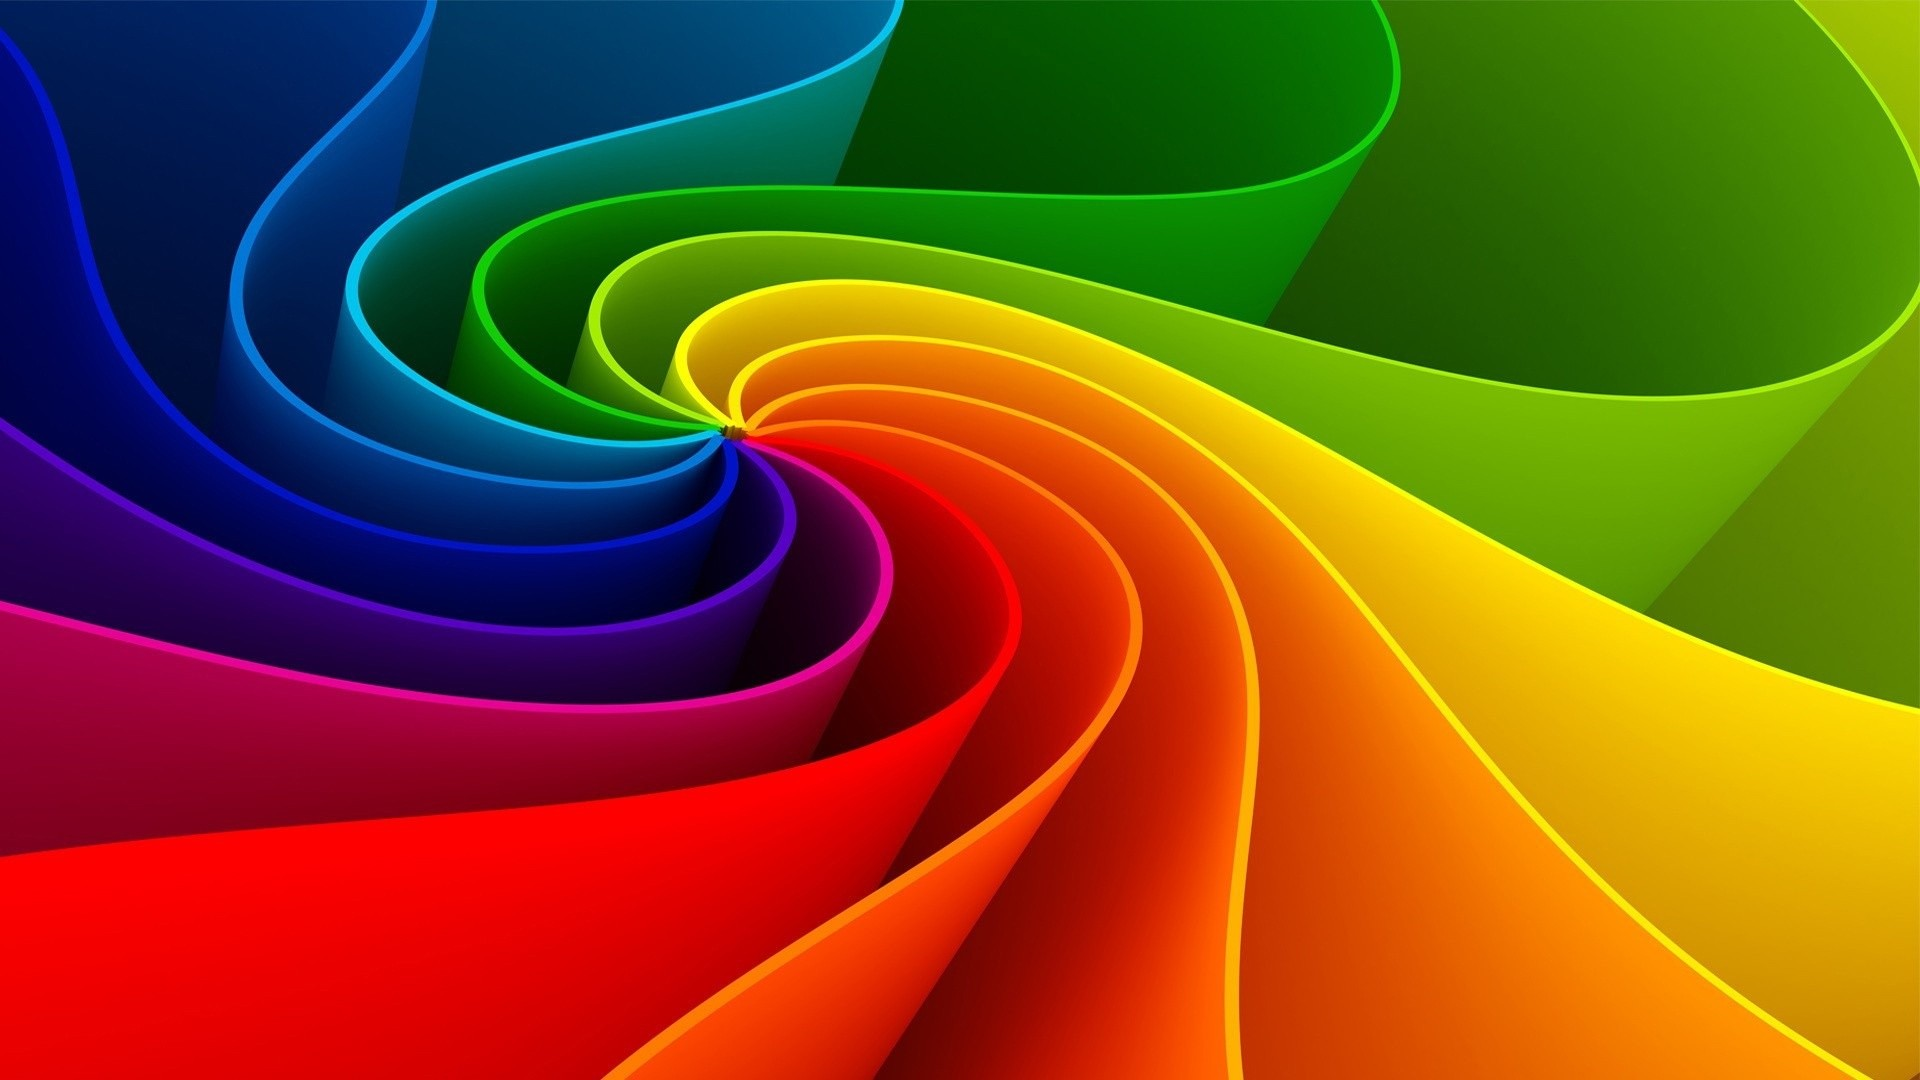 Res: 1920x1080, Abstract rainbow wallpapers hd wallpaper 3d abstract wallpapers